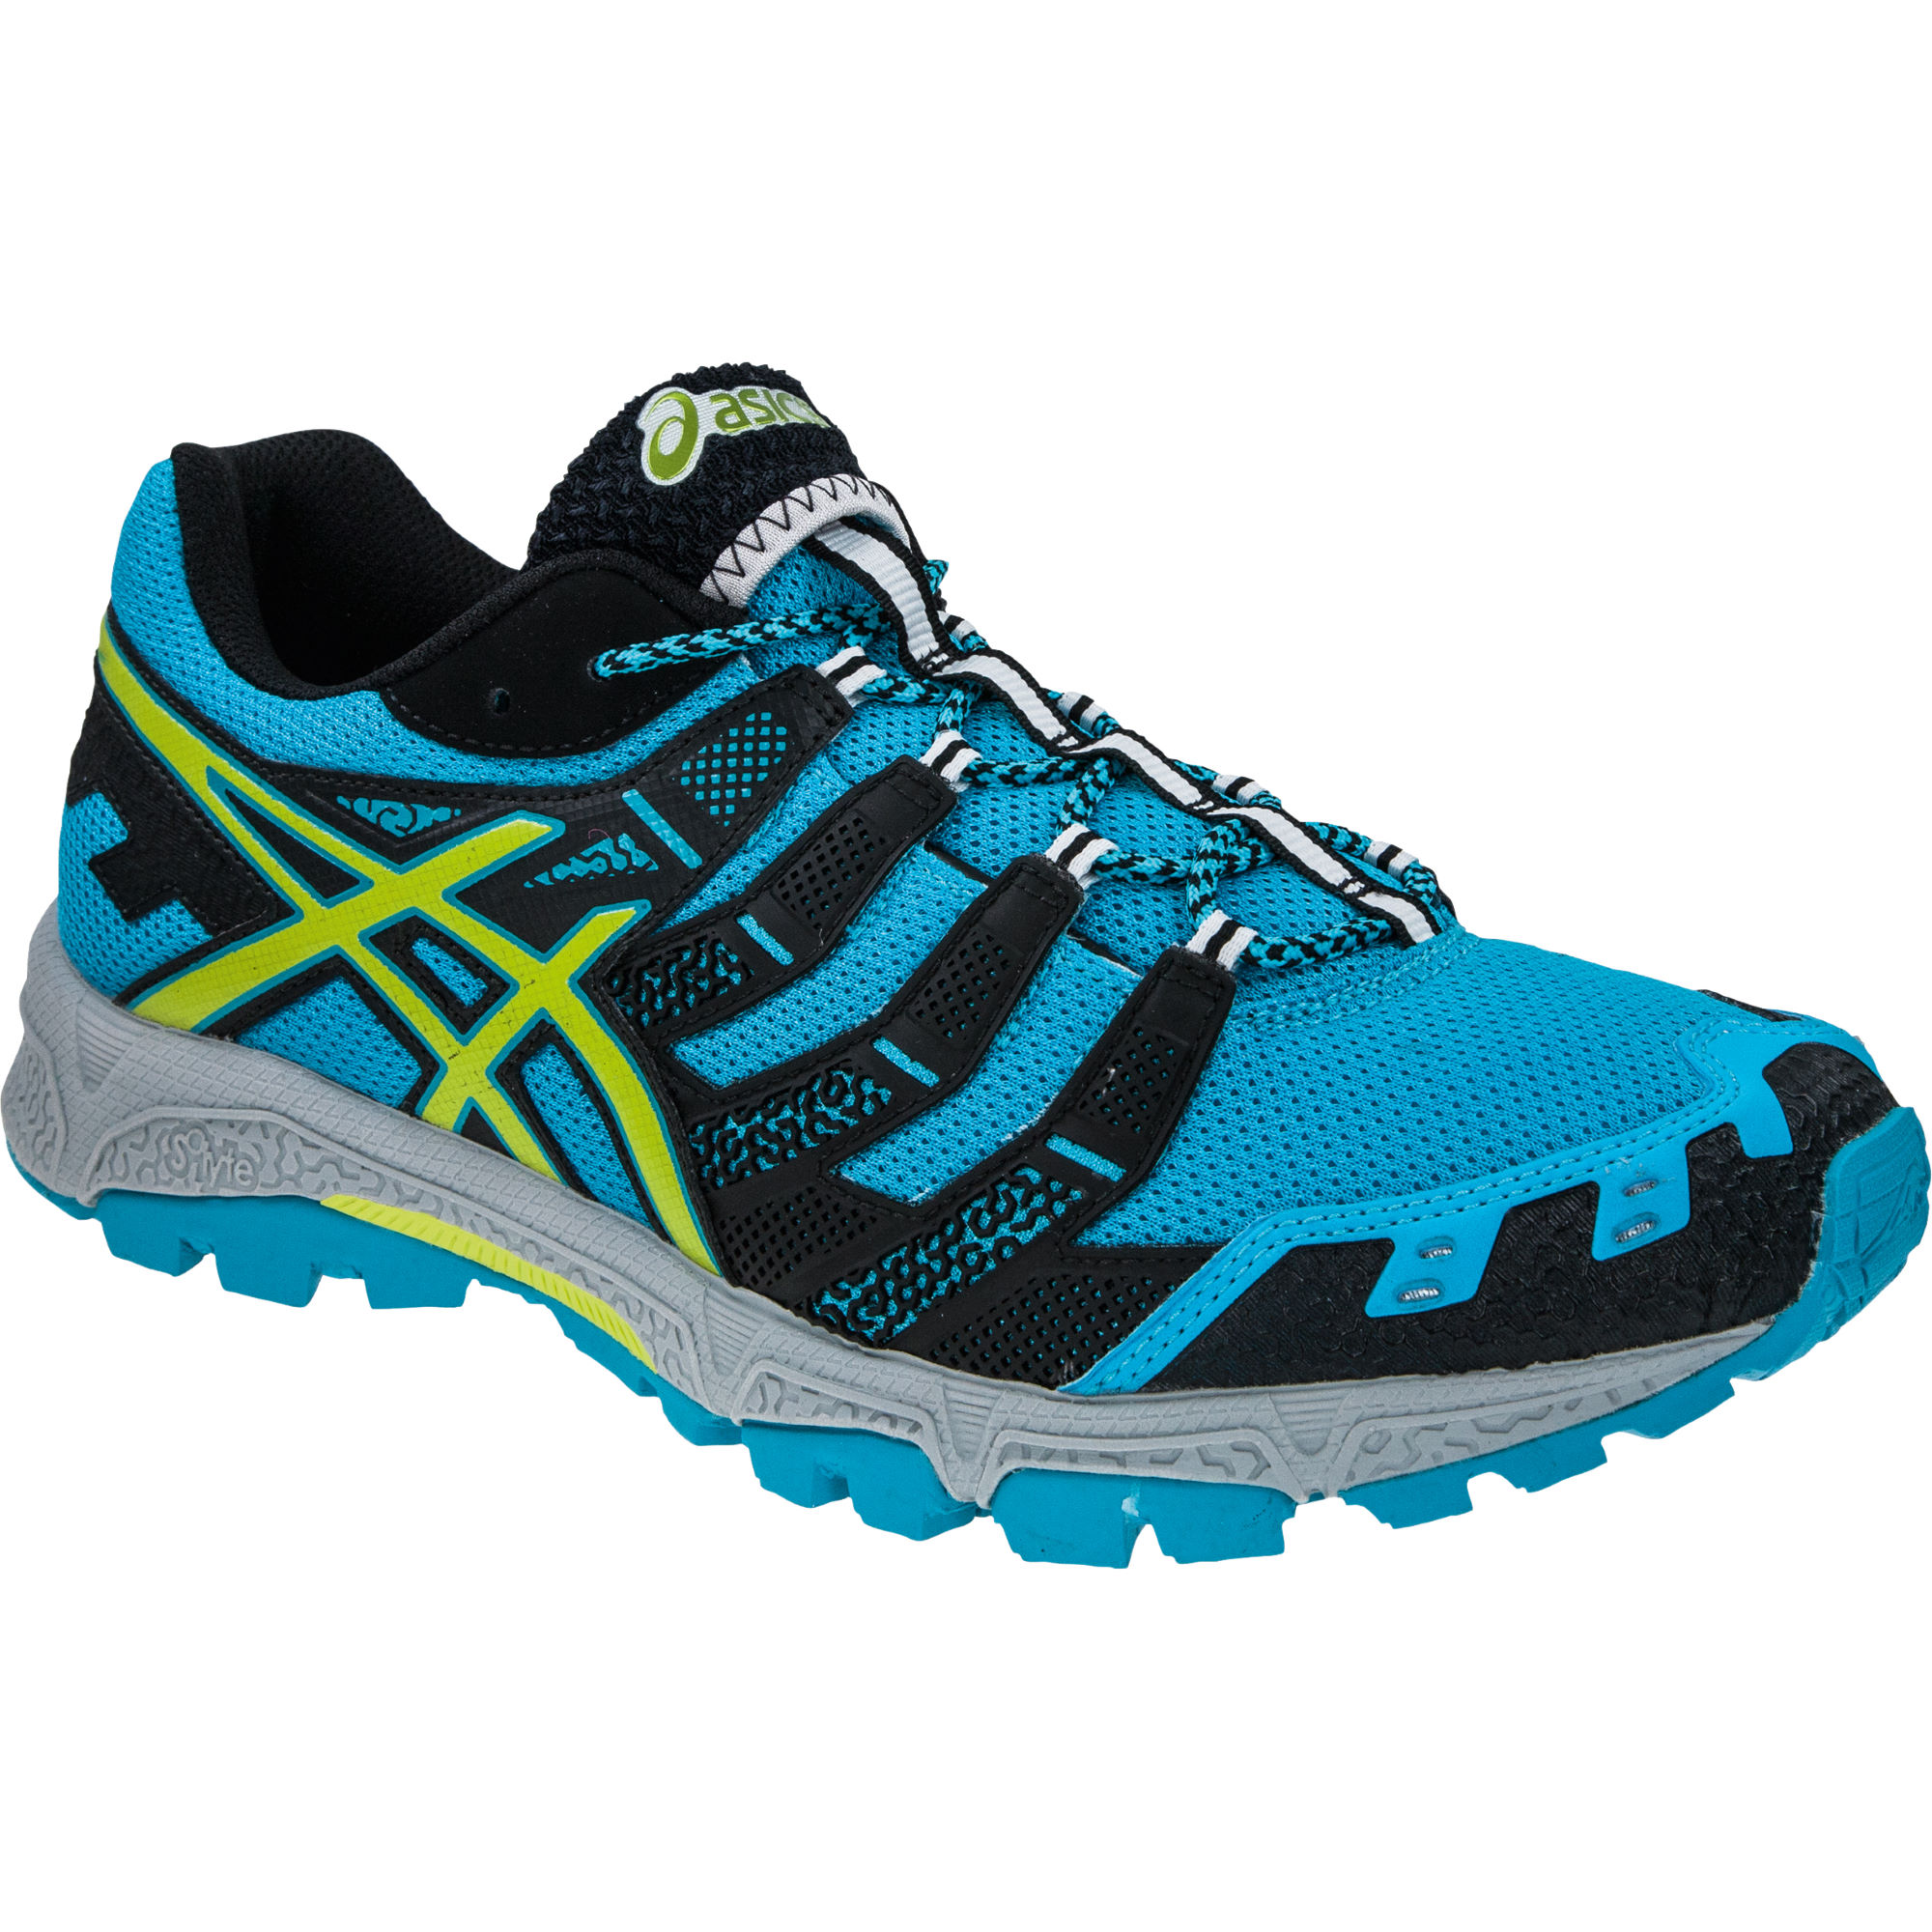 Zapatillas asics running 2014 zapatillas running asics gel - Asics Gel Fujiattack 3 Shoes Ss14